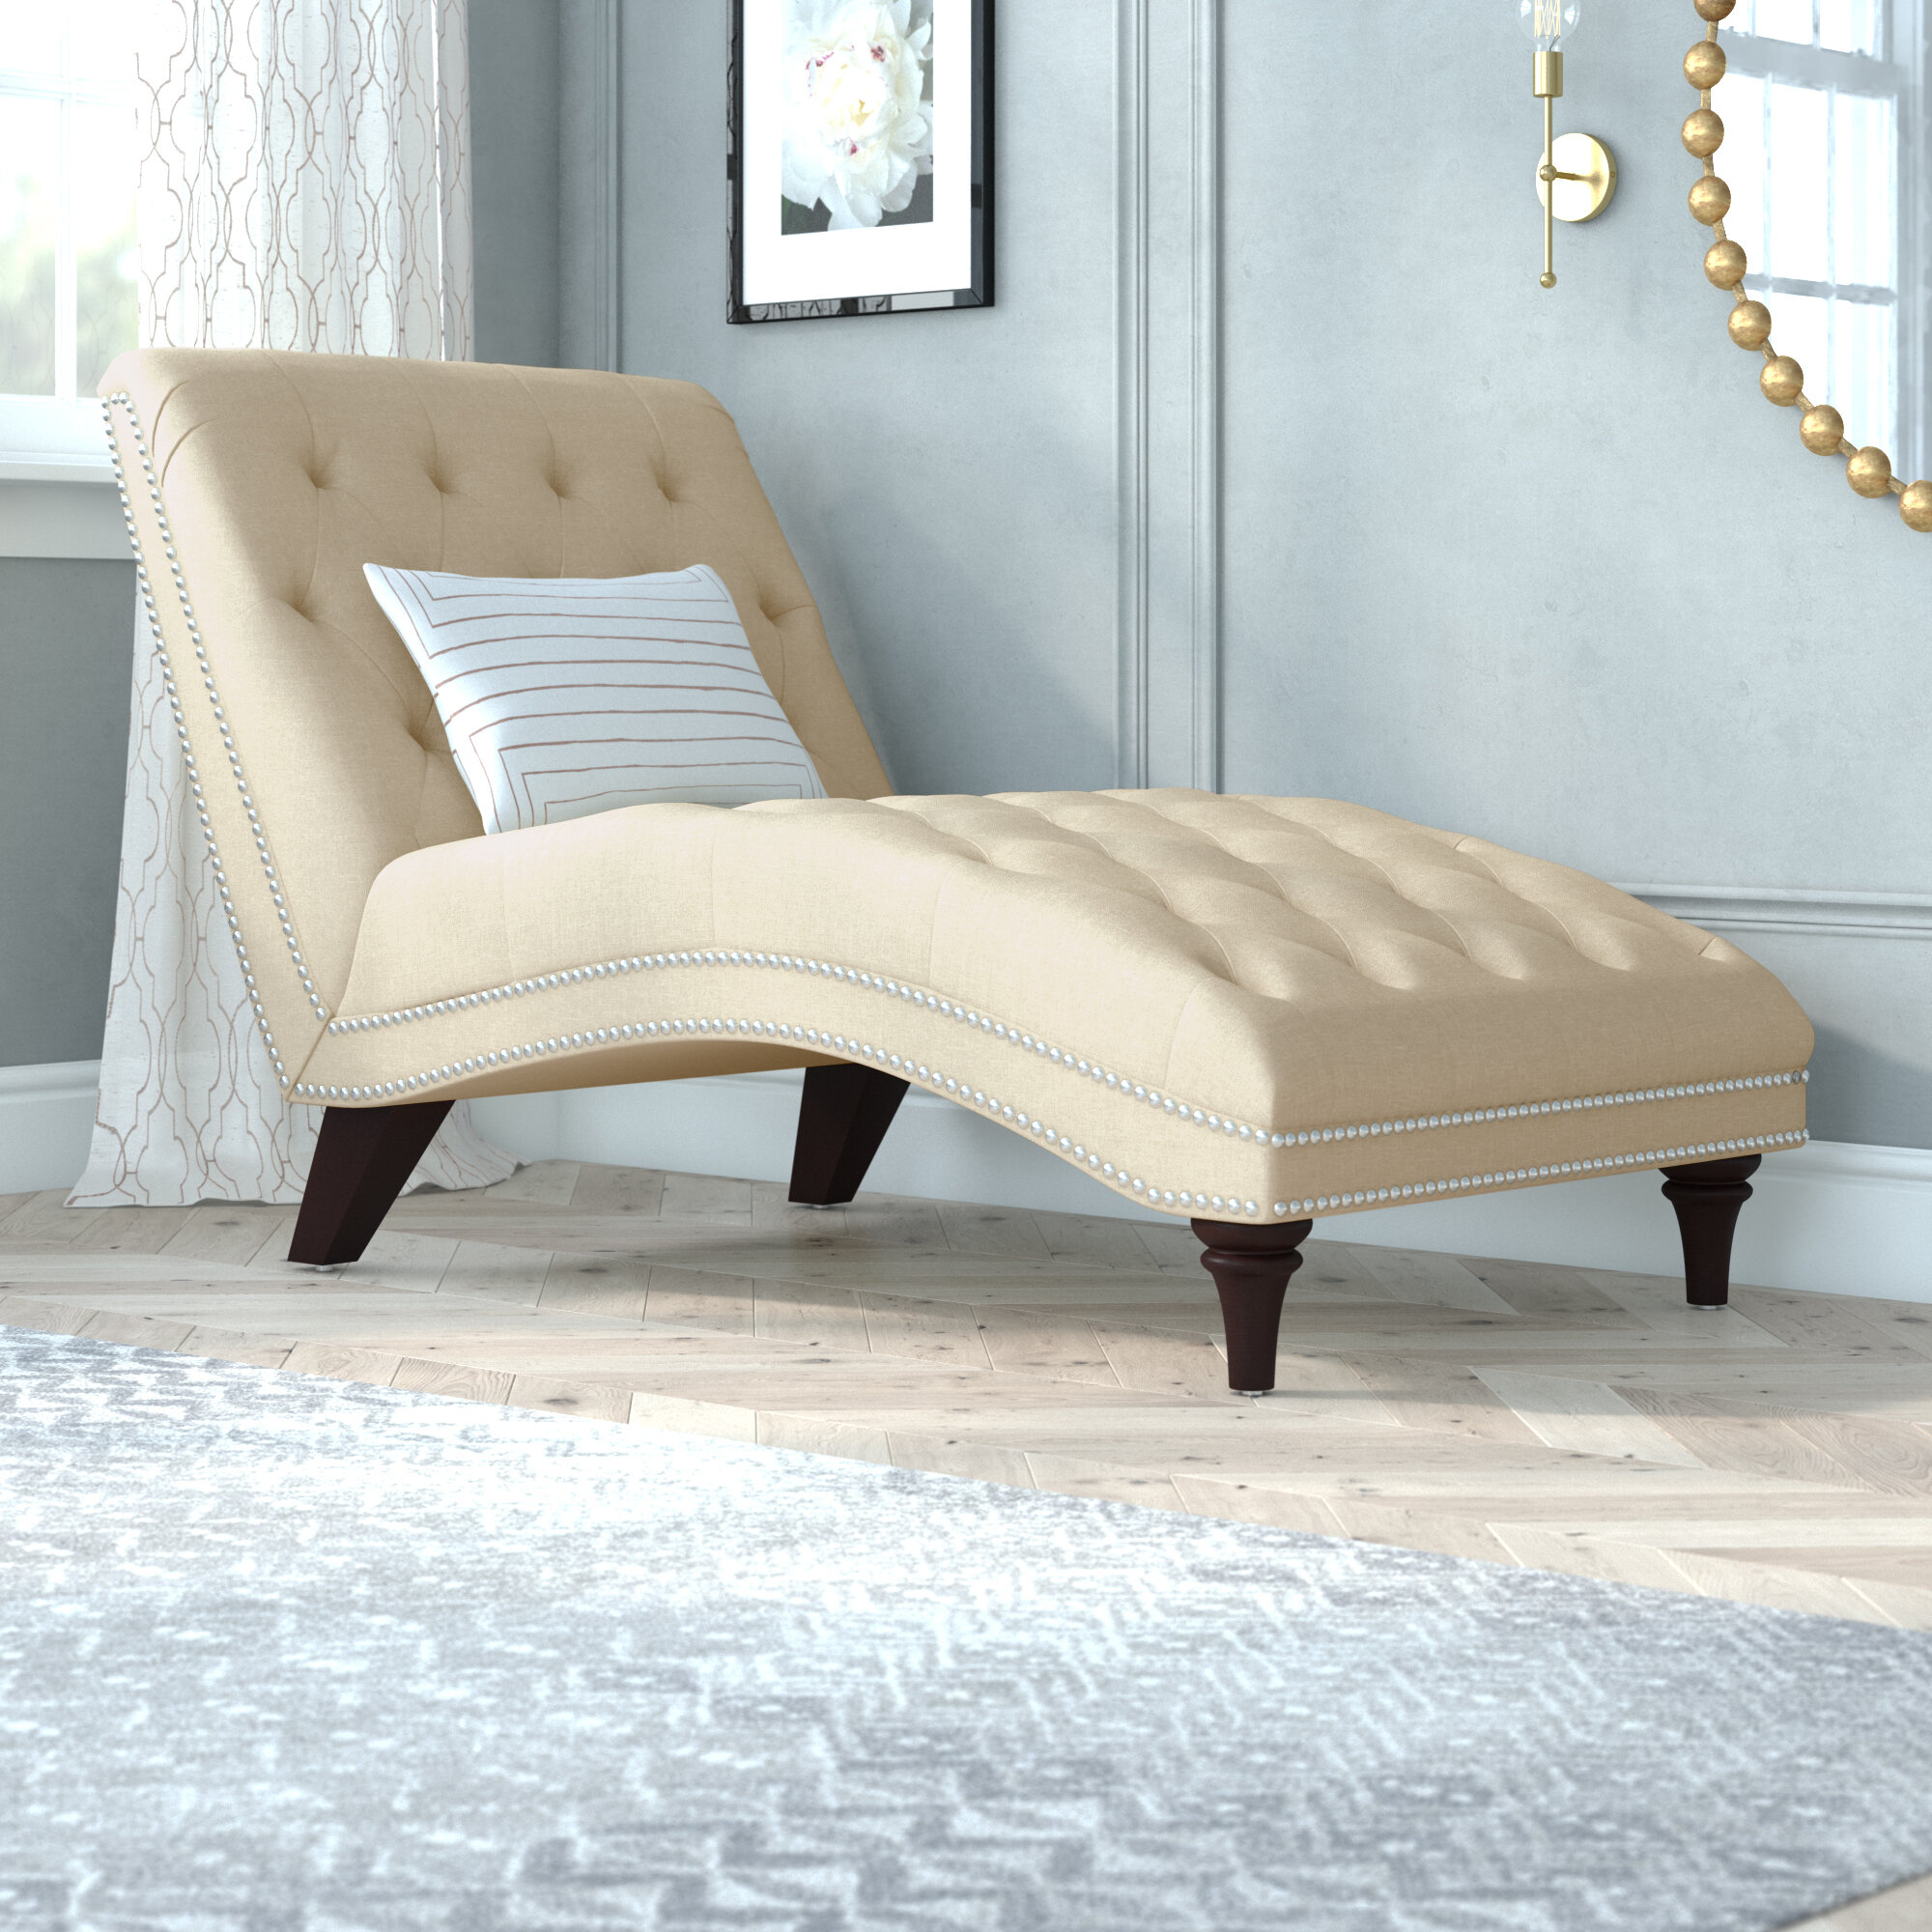 Extended Black Friday Sale On Chaise Lounge Sofas Chairs Wayfair